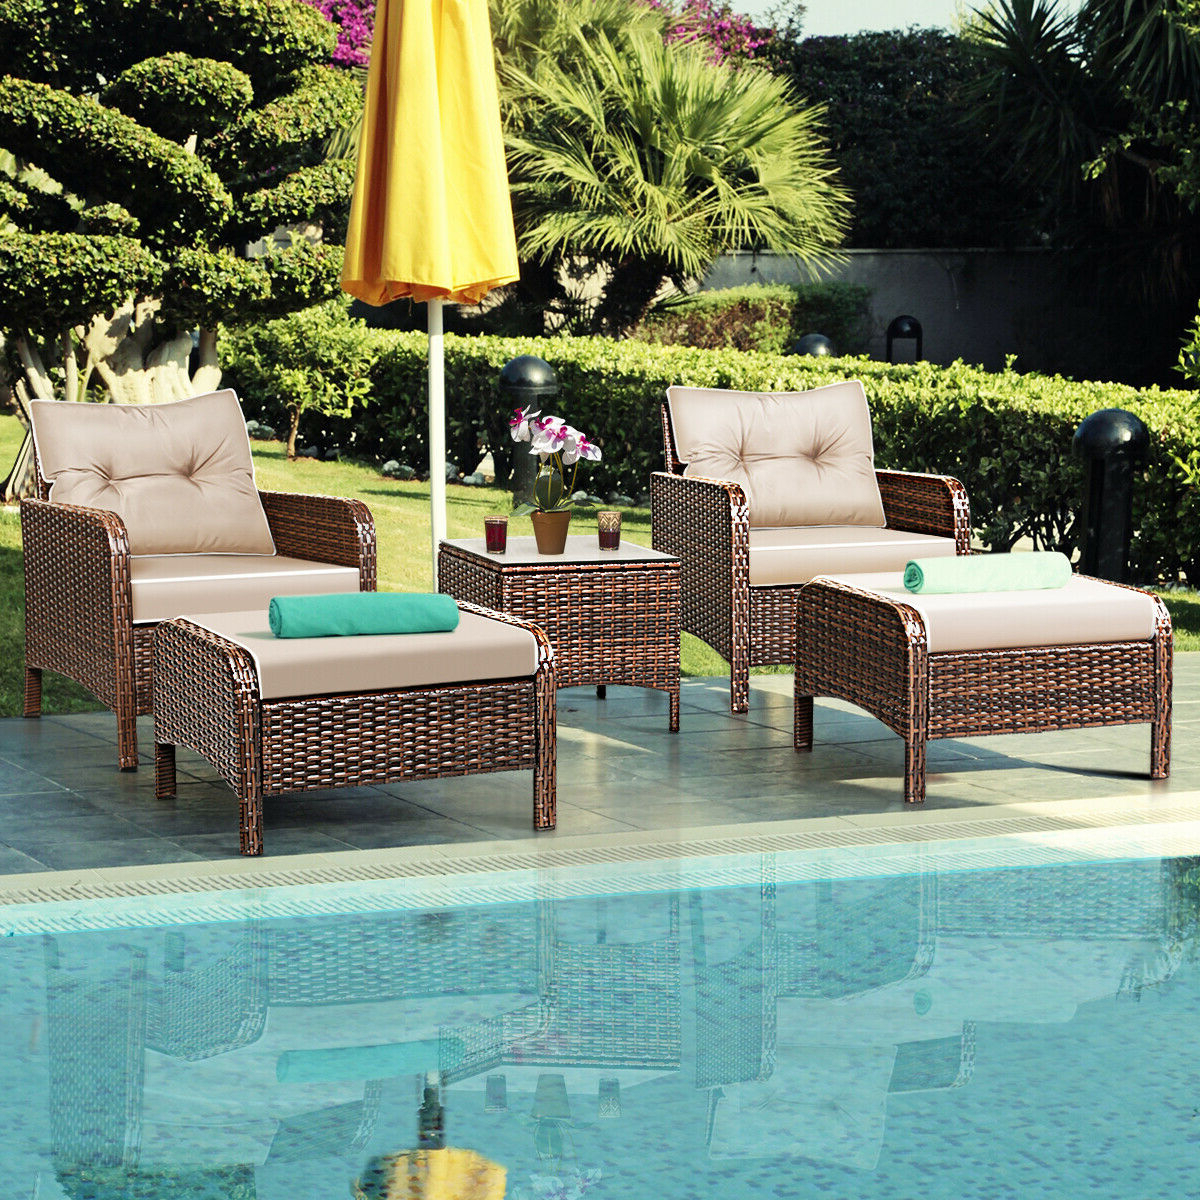 2019 Costway 5 Pcs Rattan Wicker Furniture Set Sofa Ottoman W/brown Cushion Patio Garden Yard With Regard To Outdoor Adjustable Rattan Wicker Recliner Chairs With Cushion (View 25 of 25)